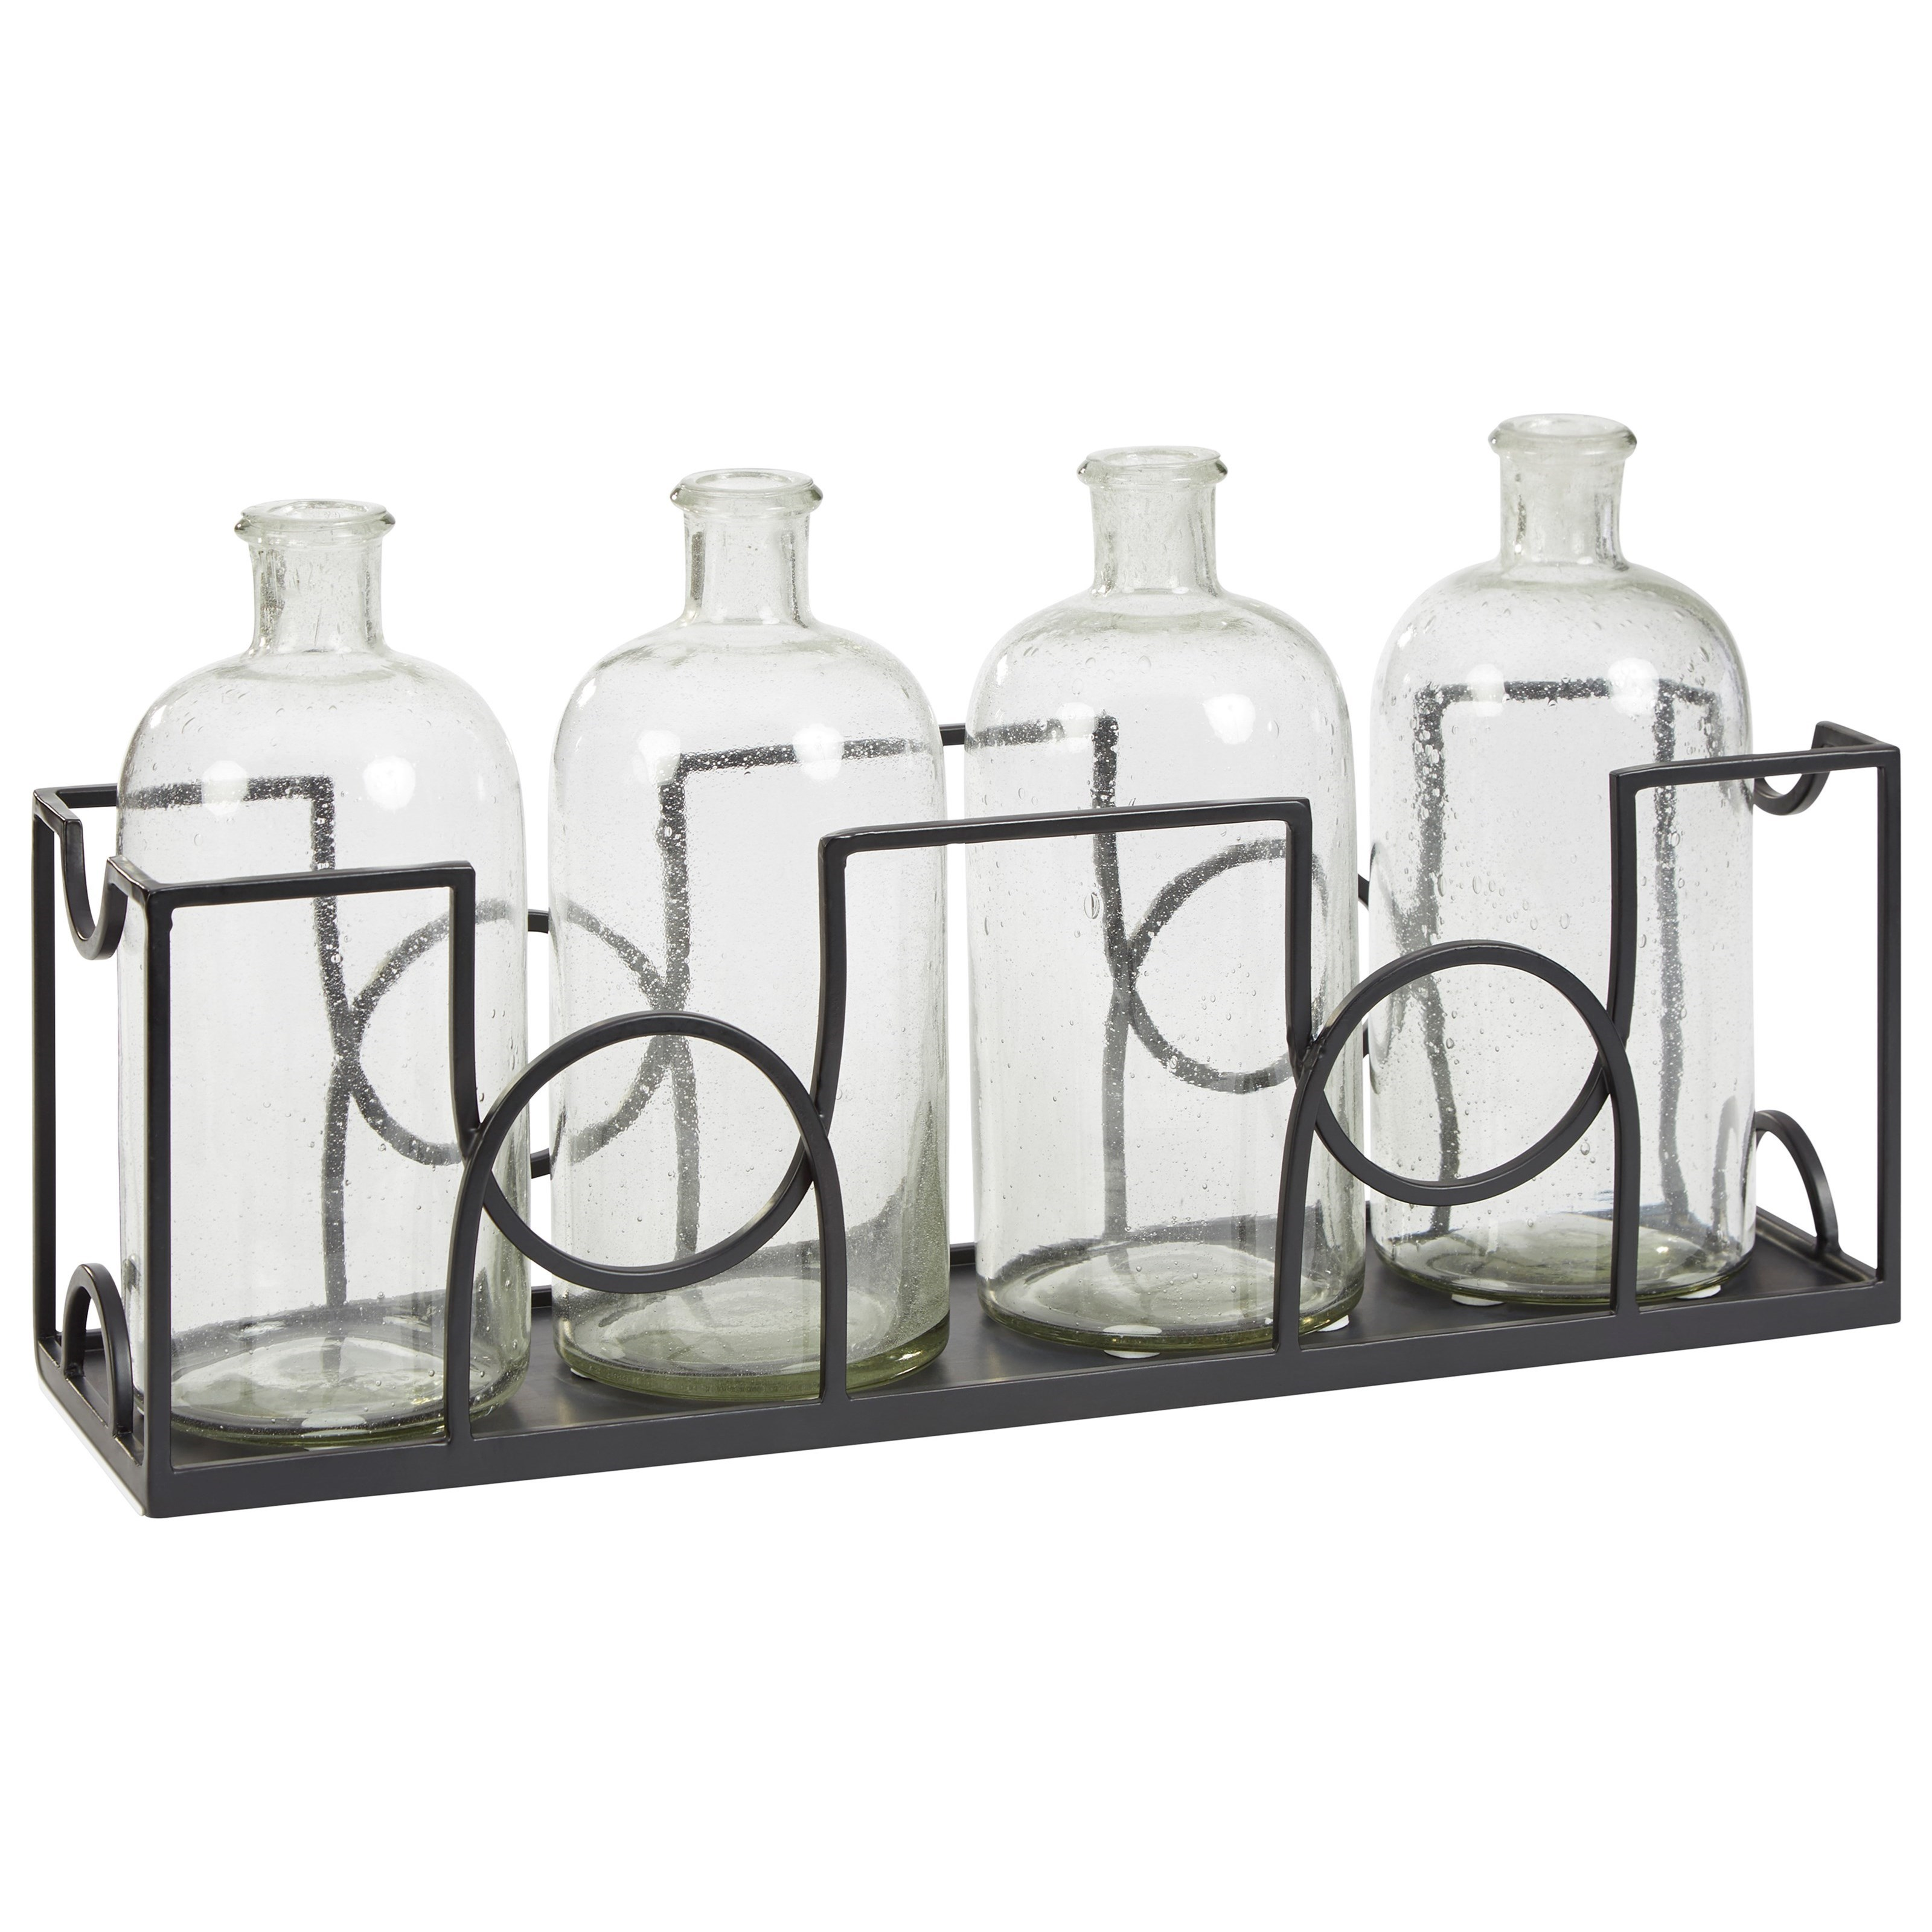 Accents Dmitri Clear/Black Accessory Set by Signature Design by Ashley at Carolina Direct